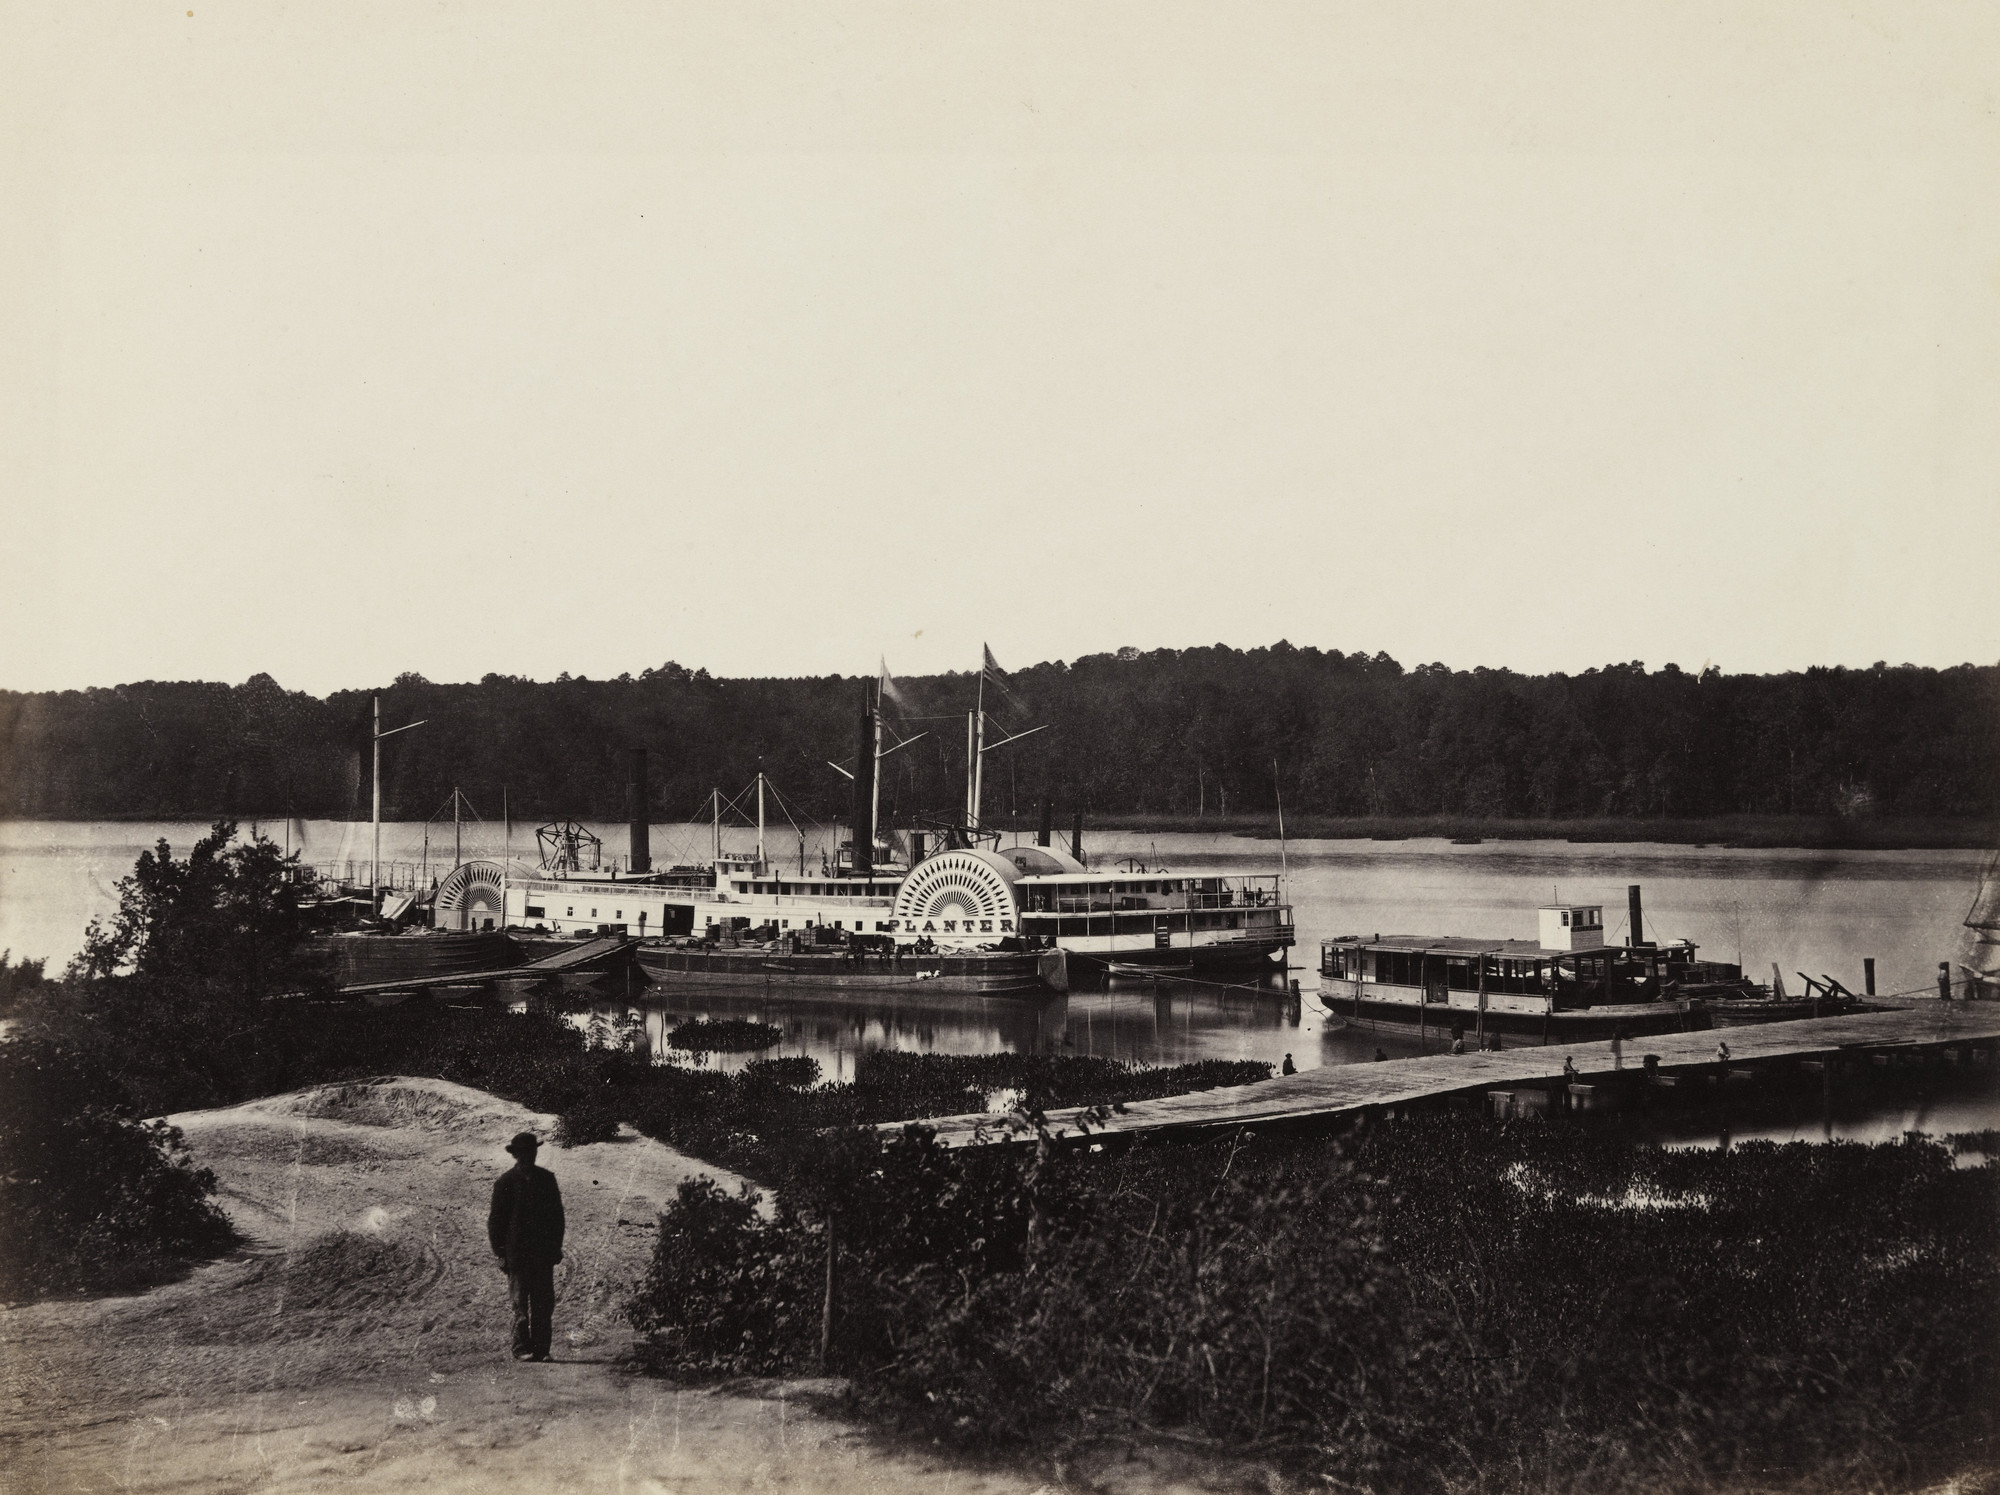 Alexander Gardner. Medical Supply Boat, Appomattox Landing, Virginia. January, 1865